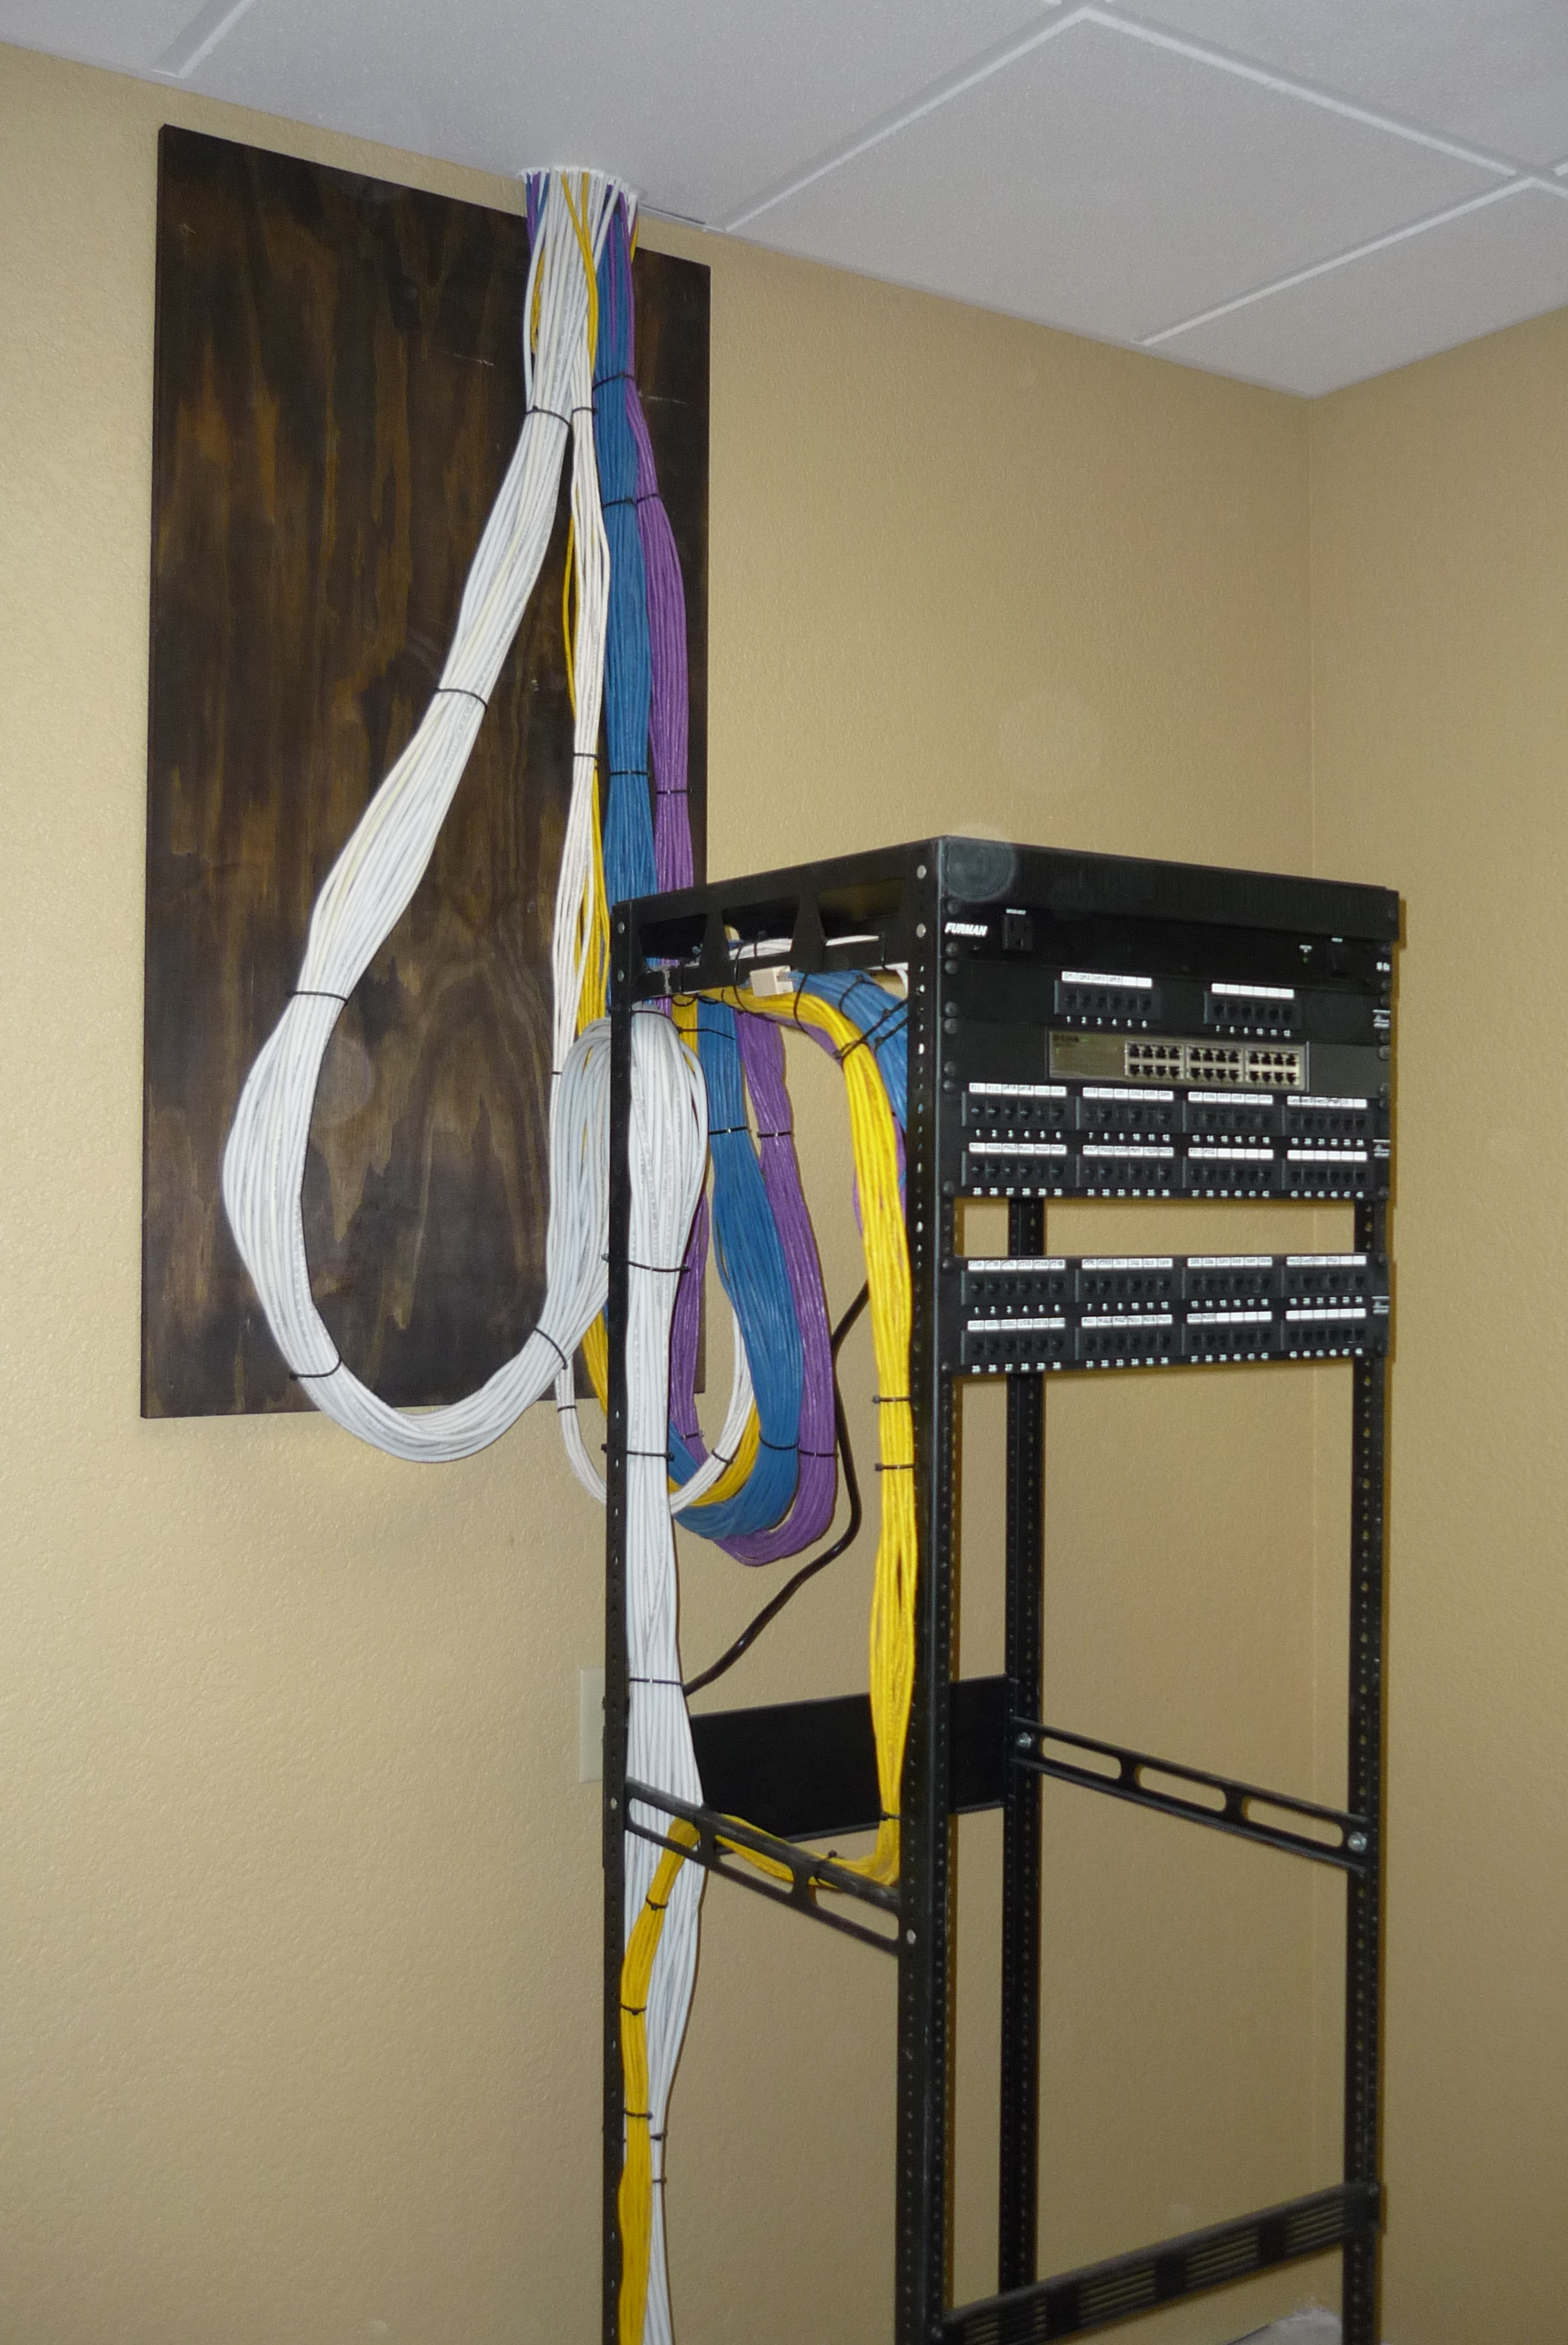 Commercial Phone, Network and TV Wiring Equipment Rack 1